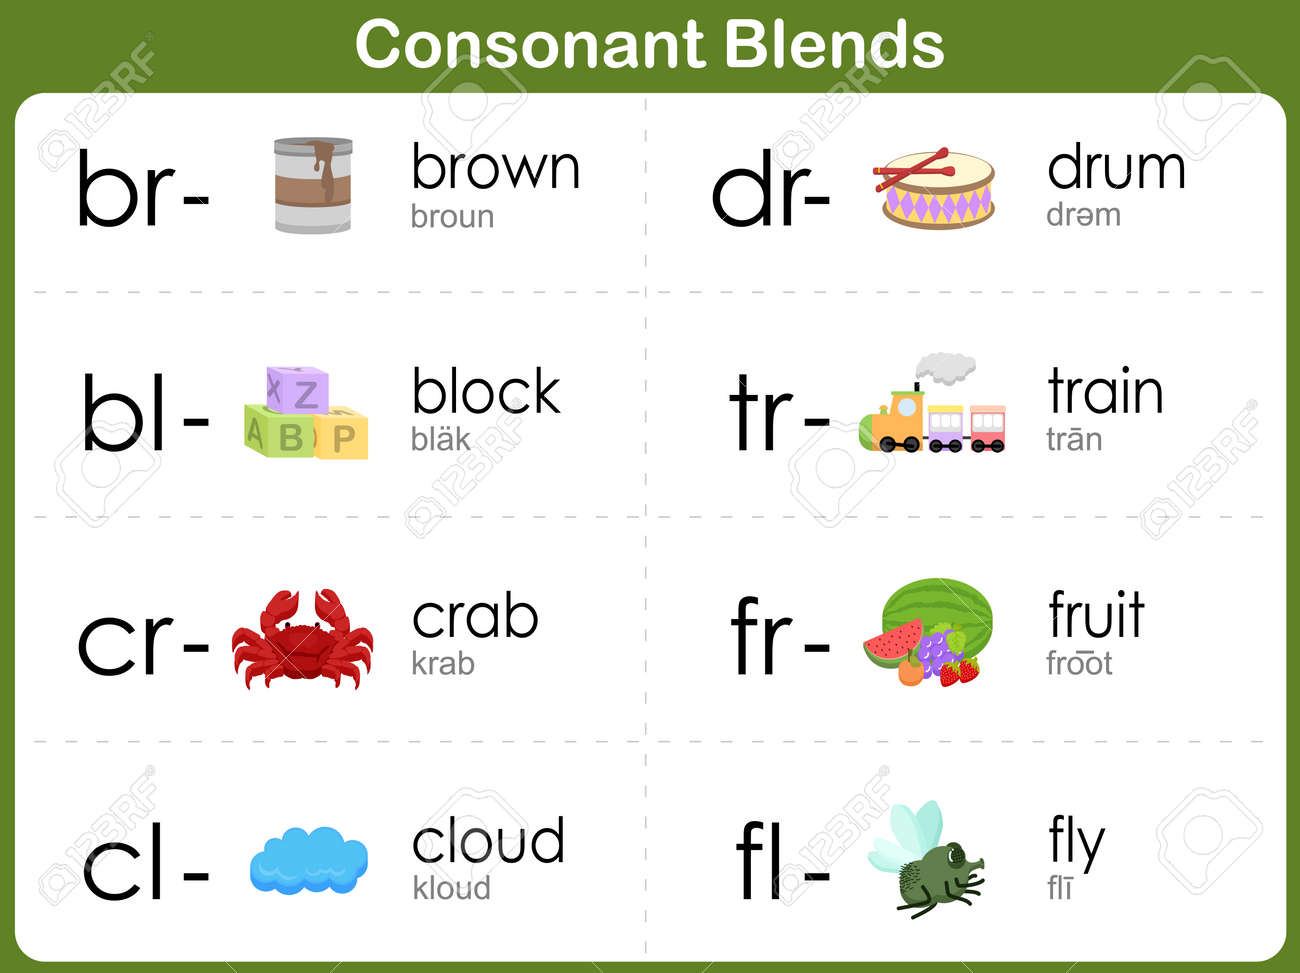 Worksheets Consonant Blend Worksheets consonant blends worksheet for kids royalty free cliparts vectors stock vector 32571597